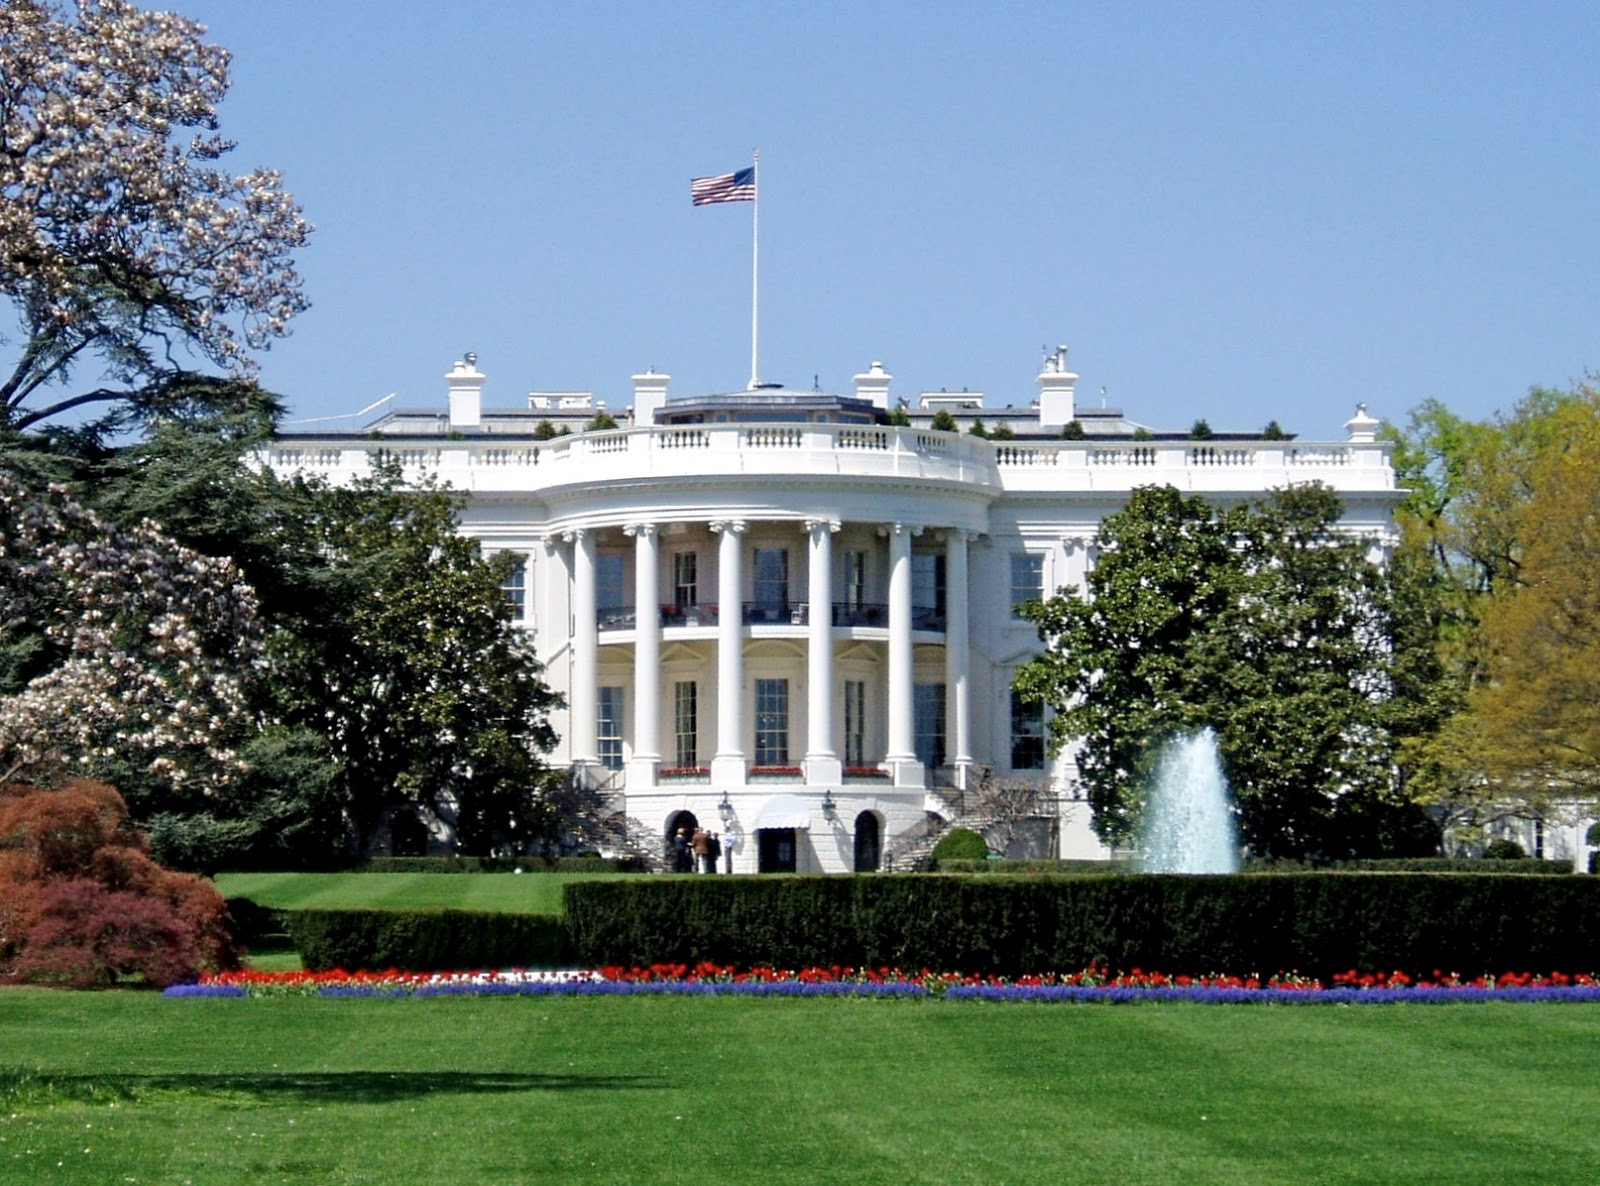 White house pictures free stock photos free stock photos for Blanca quintanilla